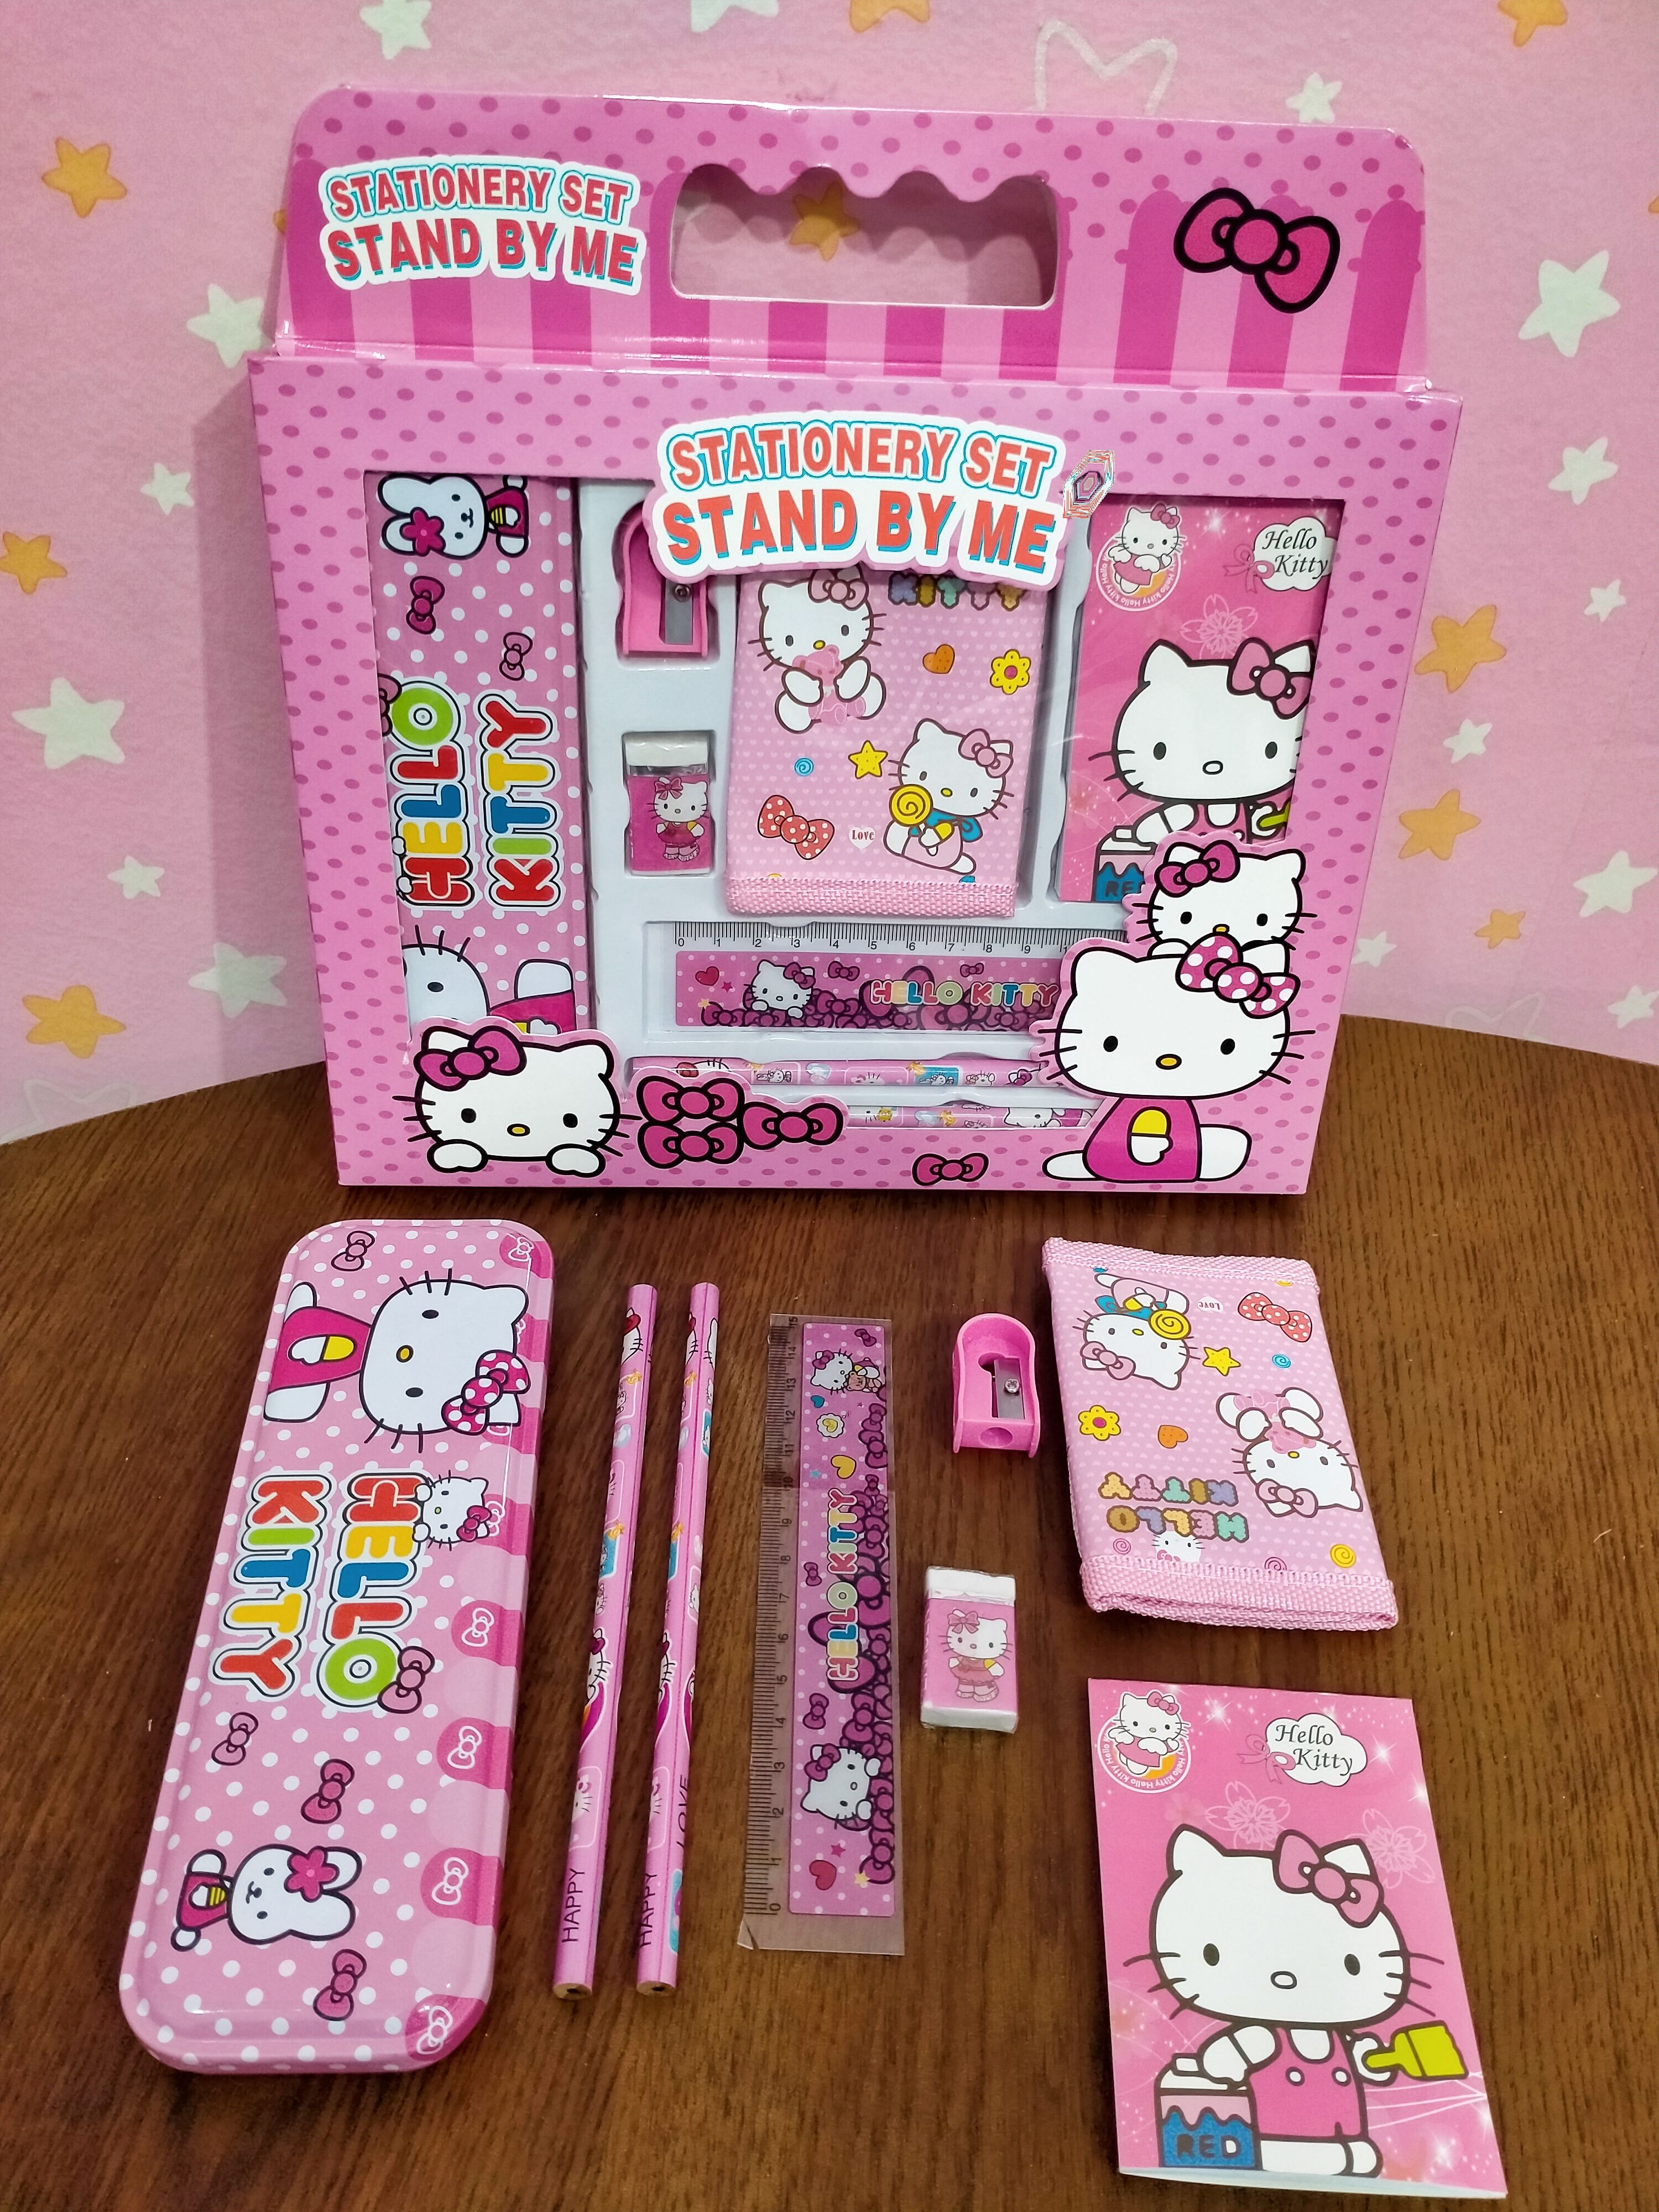 High Quality School Stationary Set For Your Kids Id S002012 In 2020 Stationary School Stationary Set Kids Stationary